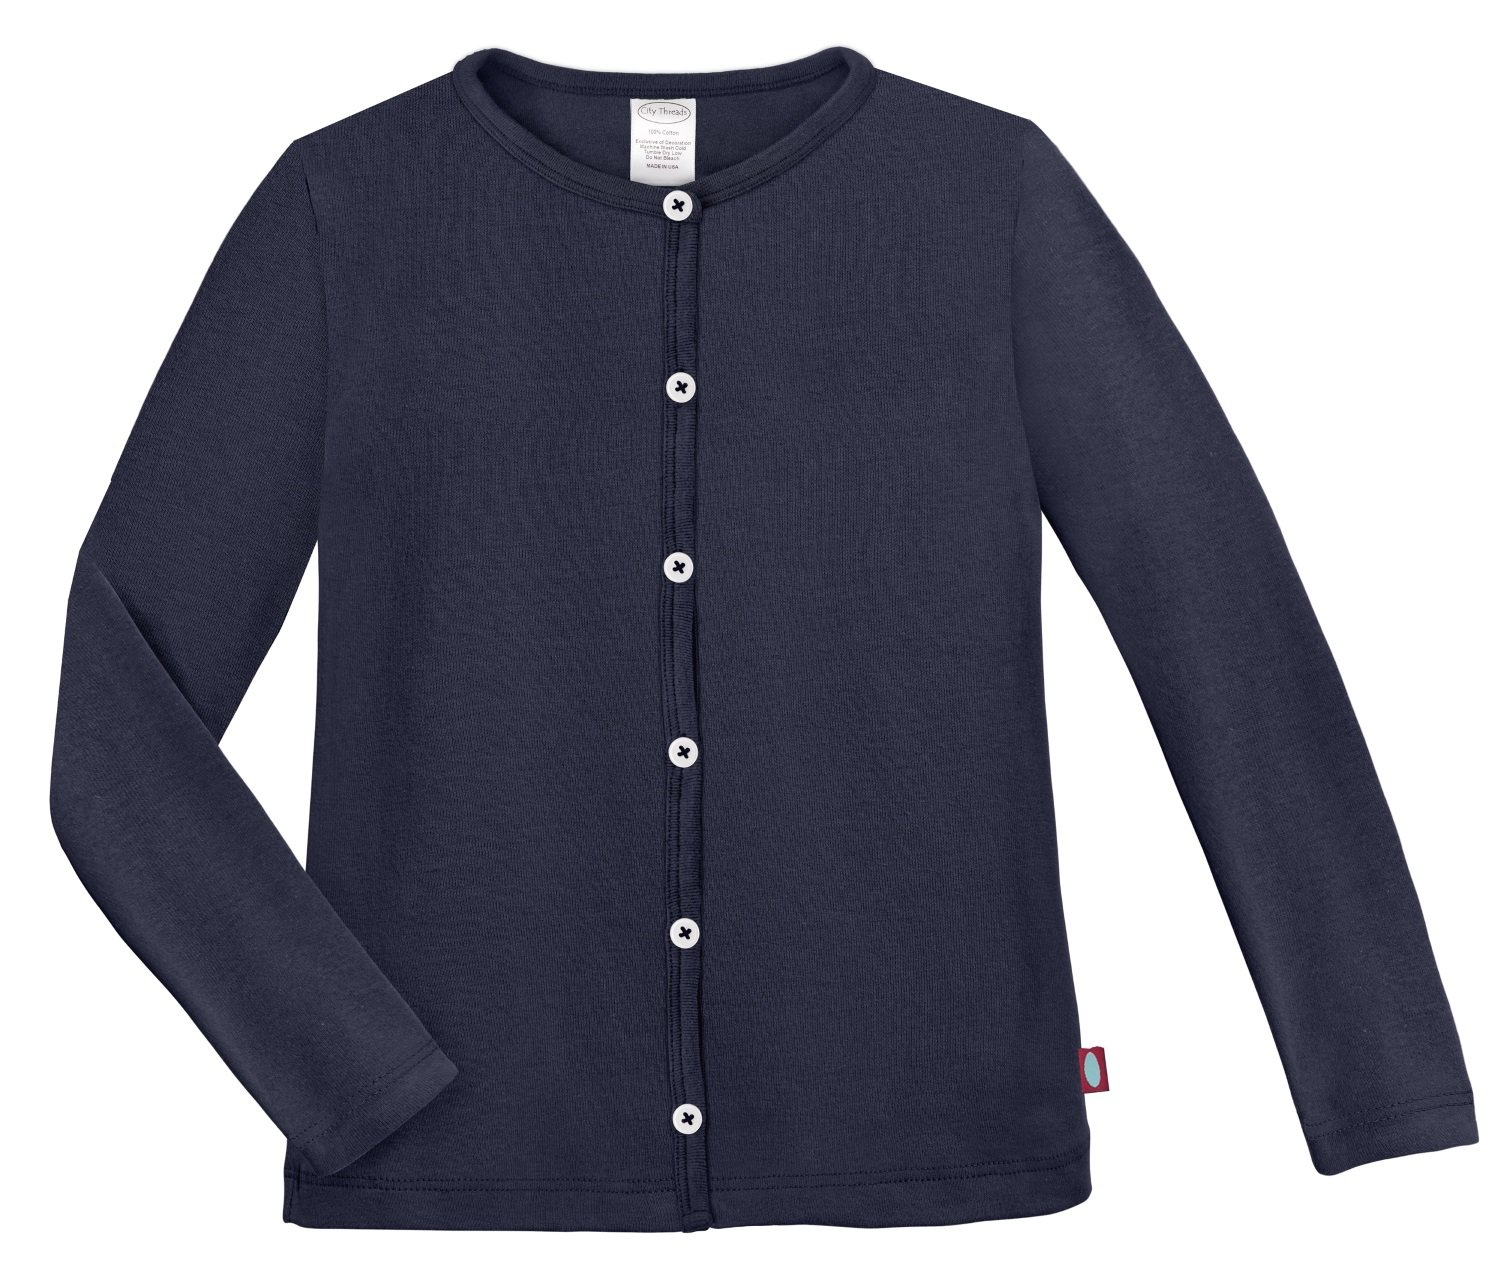 City Threads Girls Cardigan Button Down Sweater Cotton Back to School Made N USA CT-CARDIGAN-P